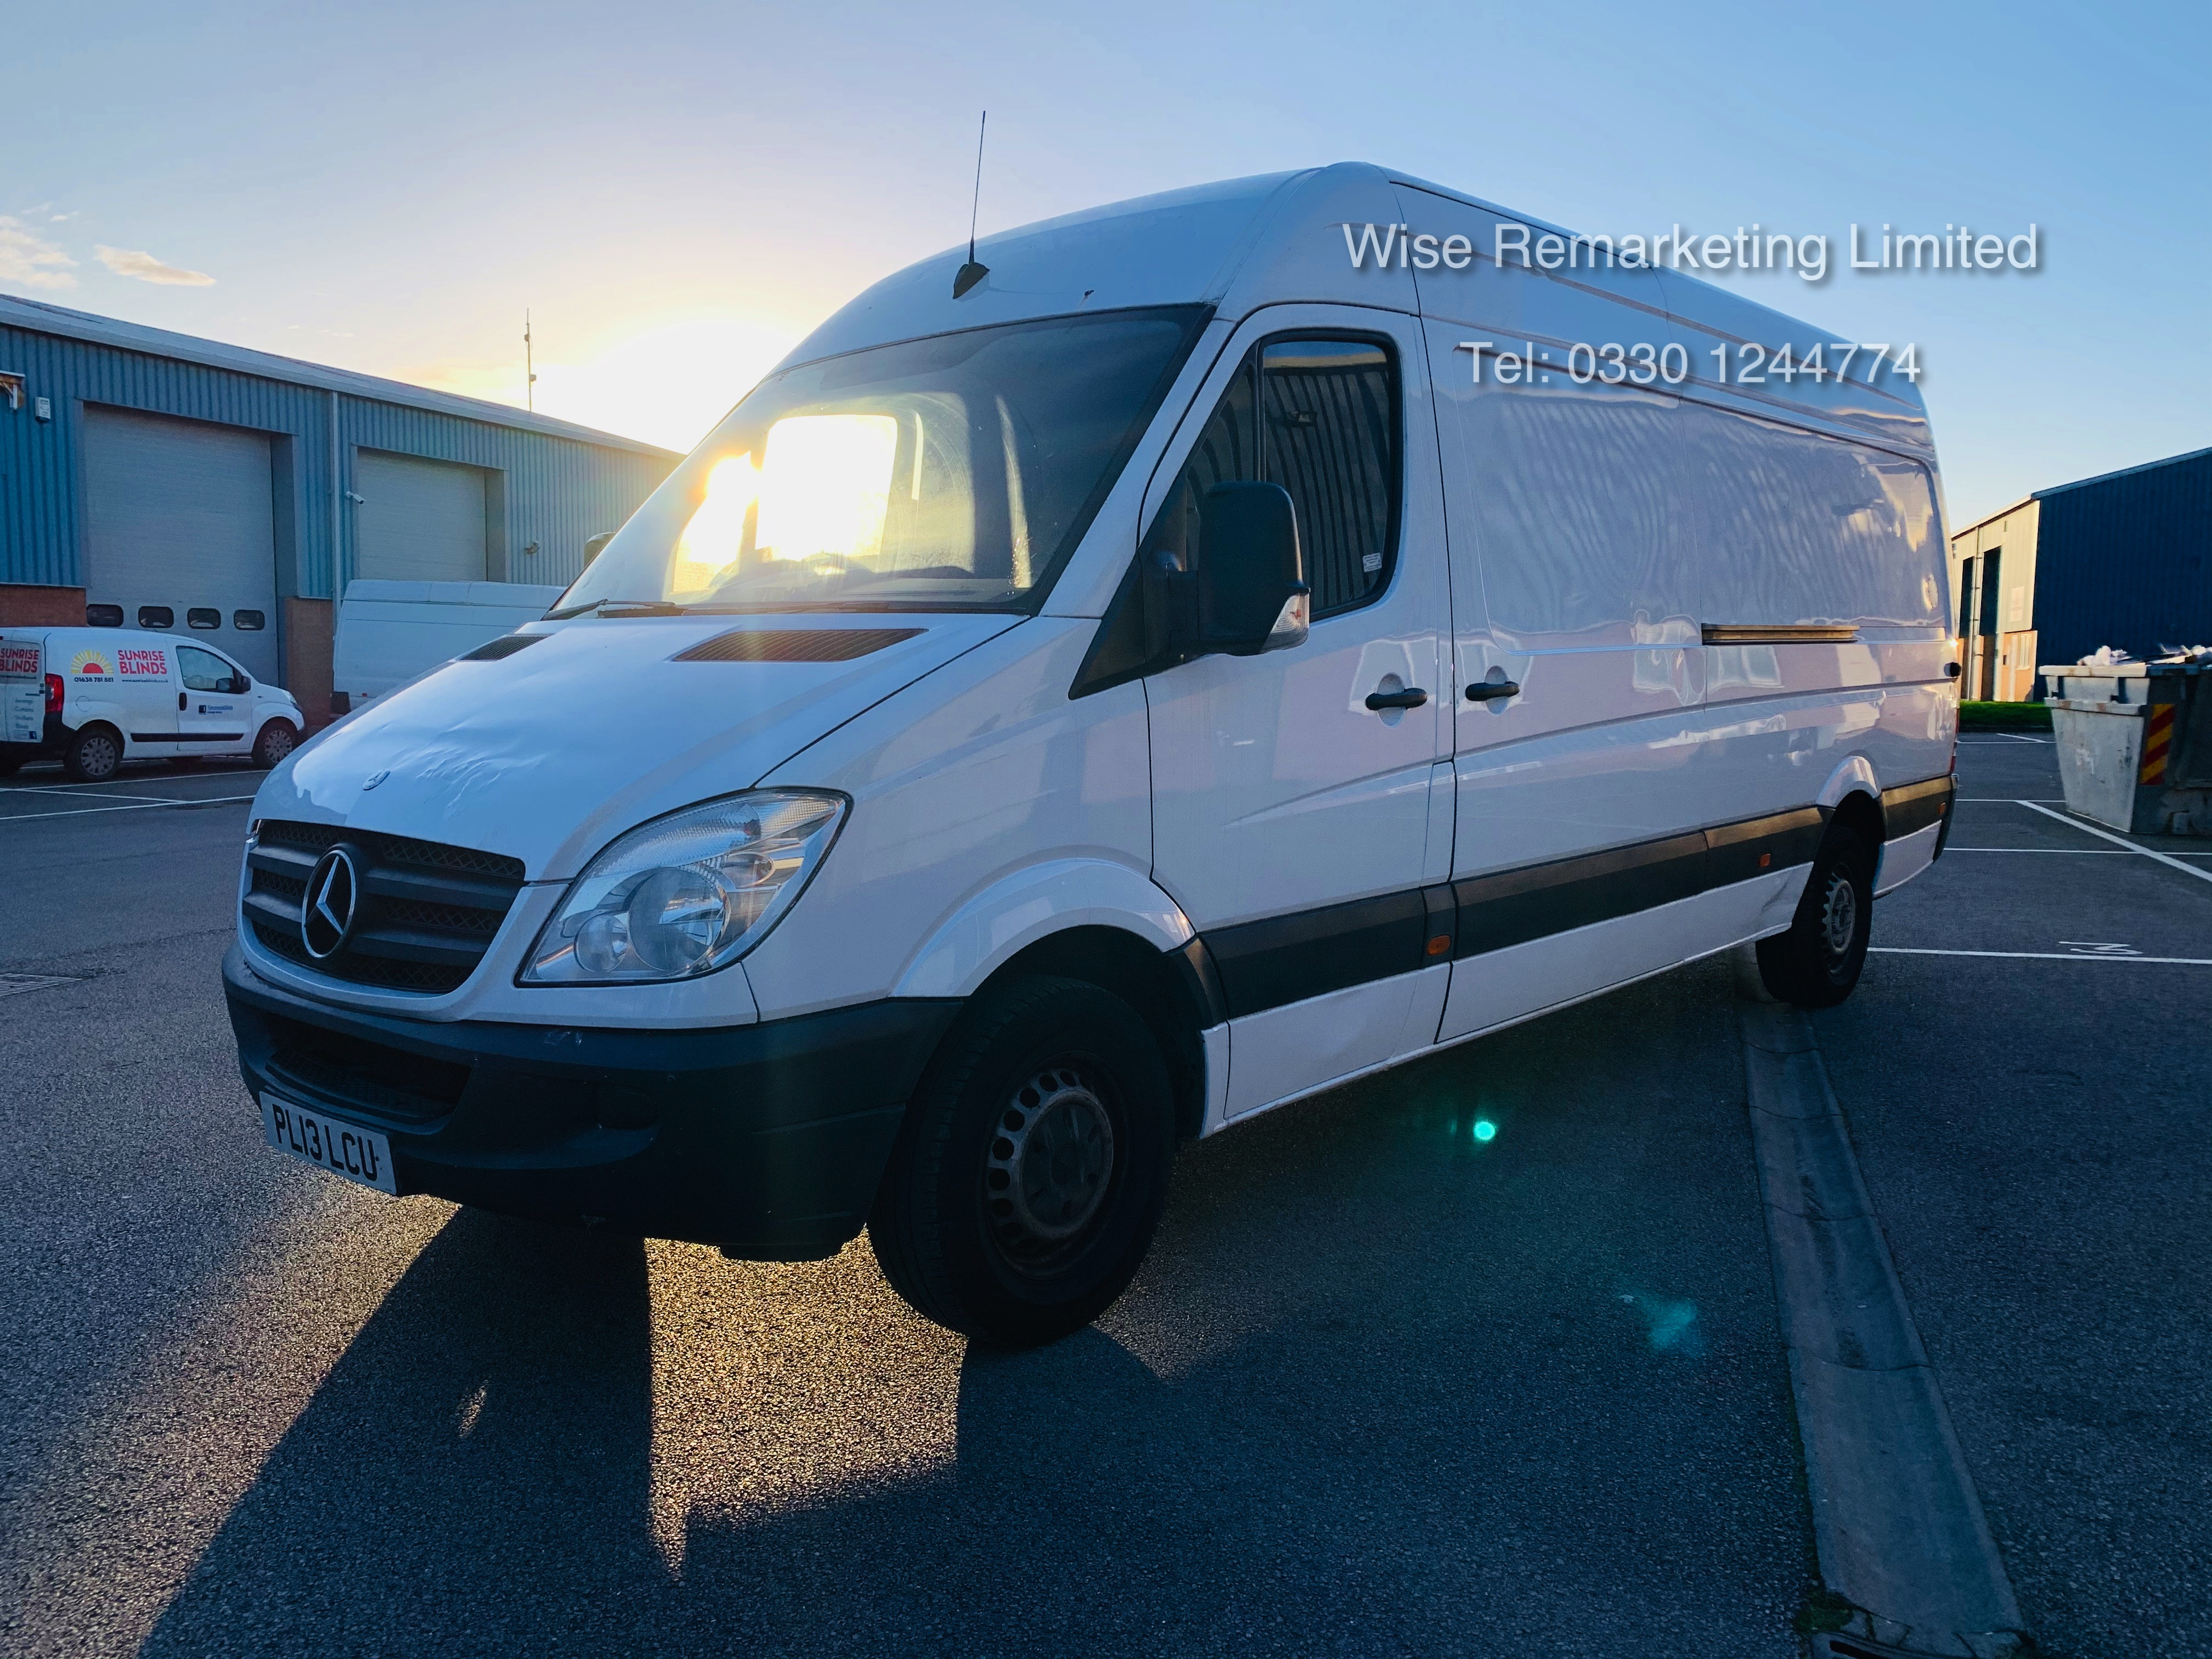 Mercedes Sprinter 316 2.1 CDI Long Wheel Base High Roof Van - 2013 13 Reg - 1 Owner From New - Image 5 of 20